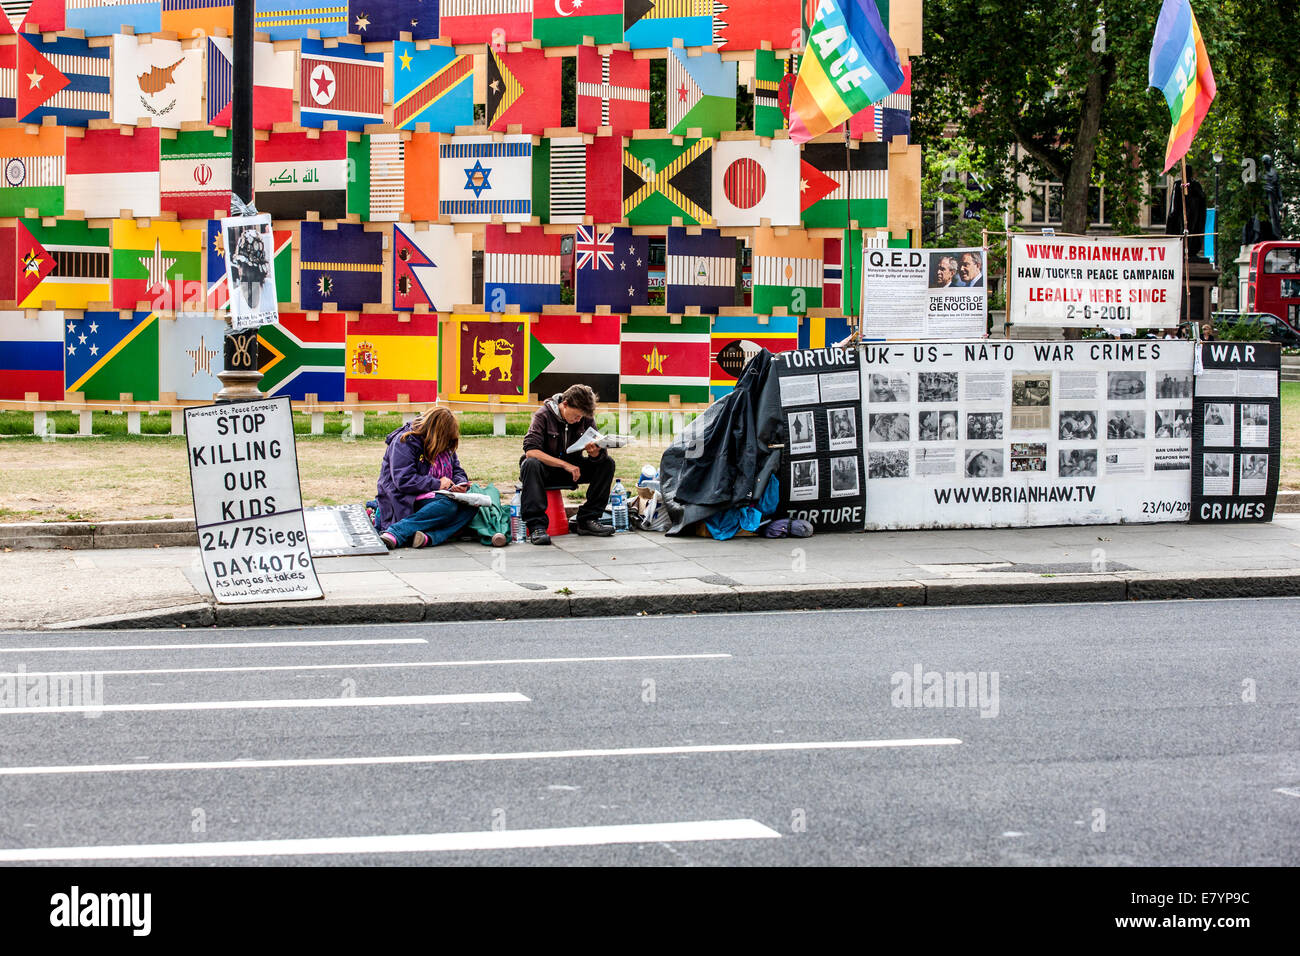 LONDON, ENGLAND - May 2012: Activists take turns on Parliament Square, in front of London's Parliement to protest - Stock Image